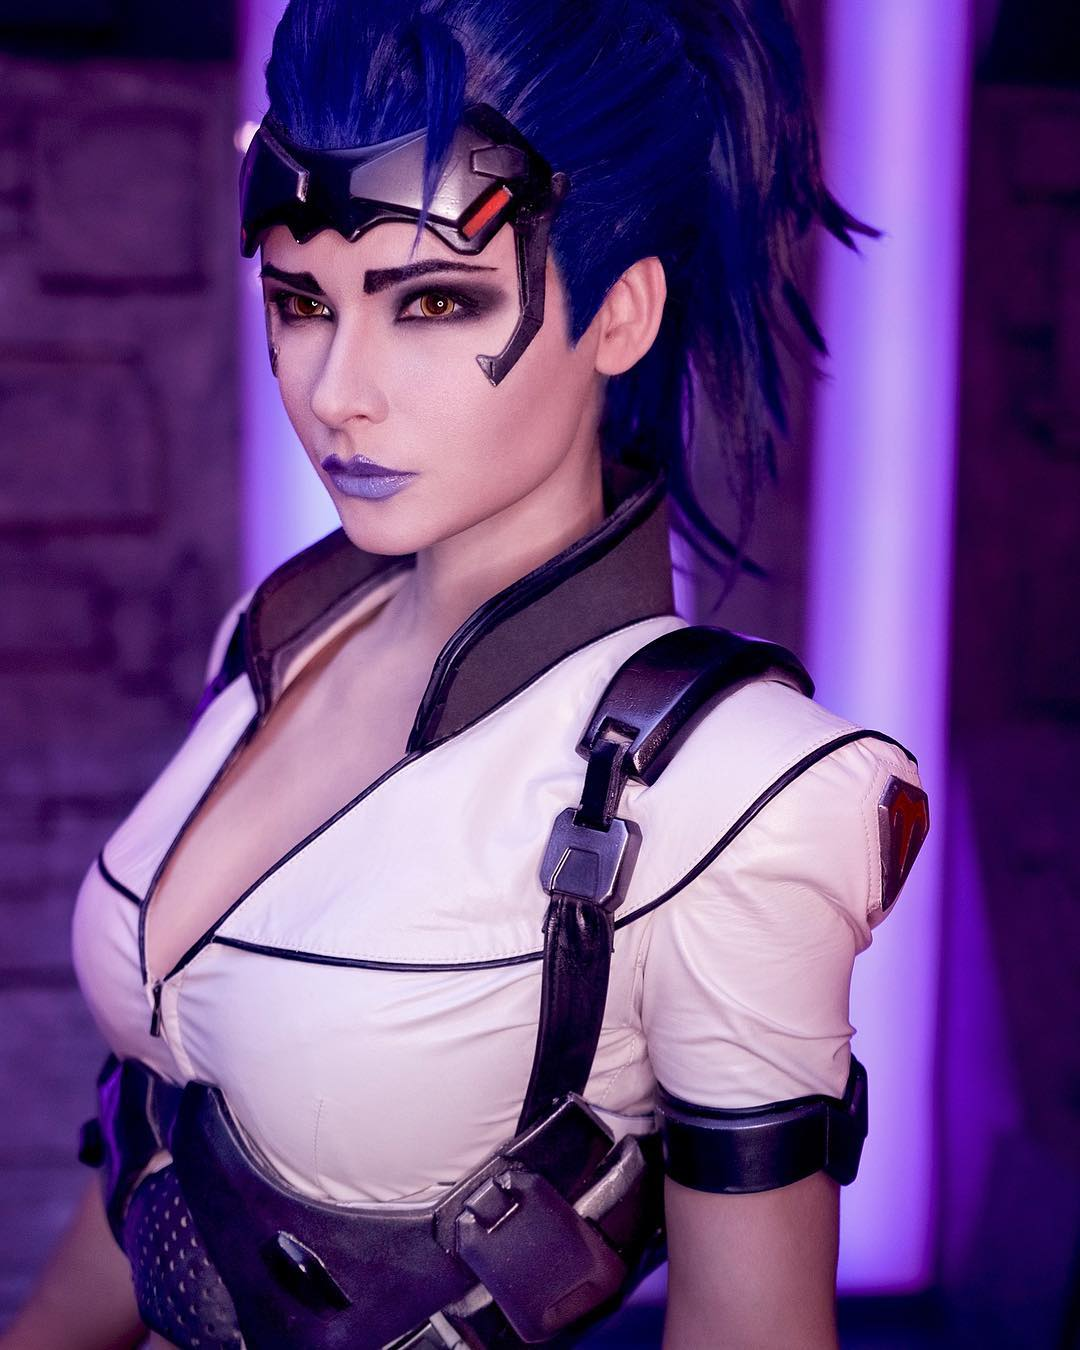 49 hot photos of Jannet Incosplay that expose her